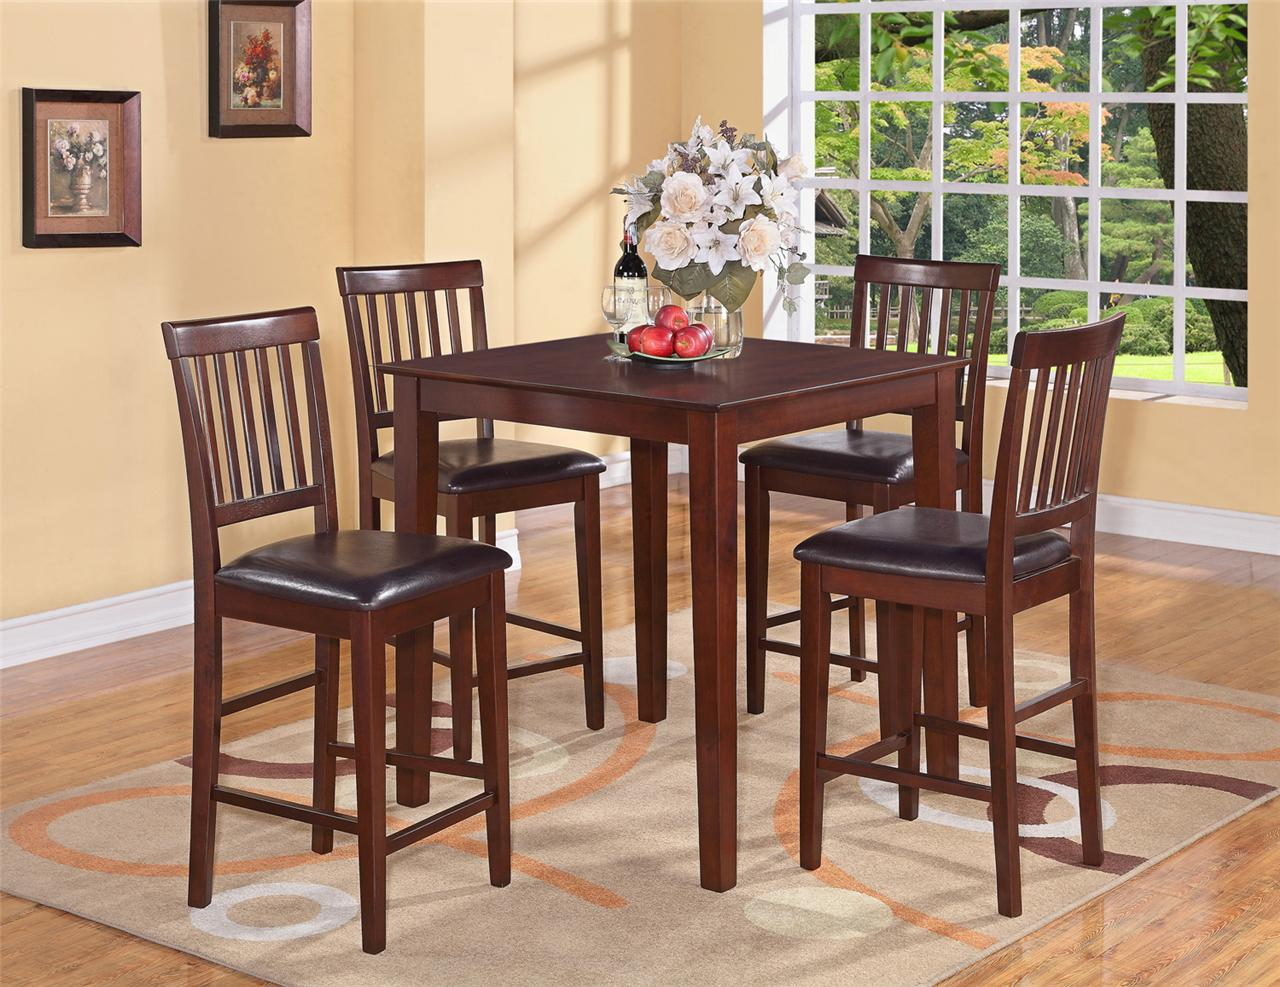 Faux leather kitchen chairs Photo - 1